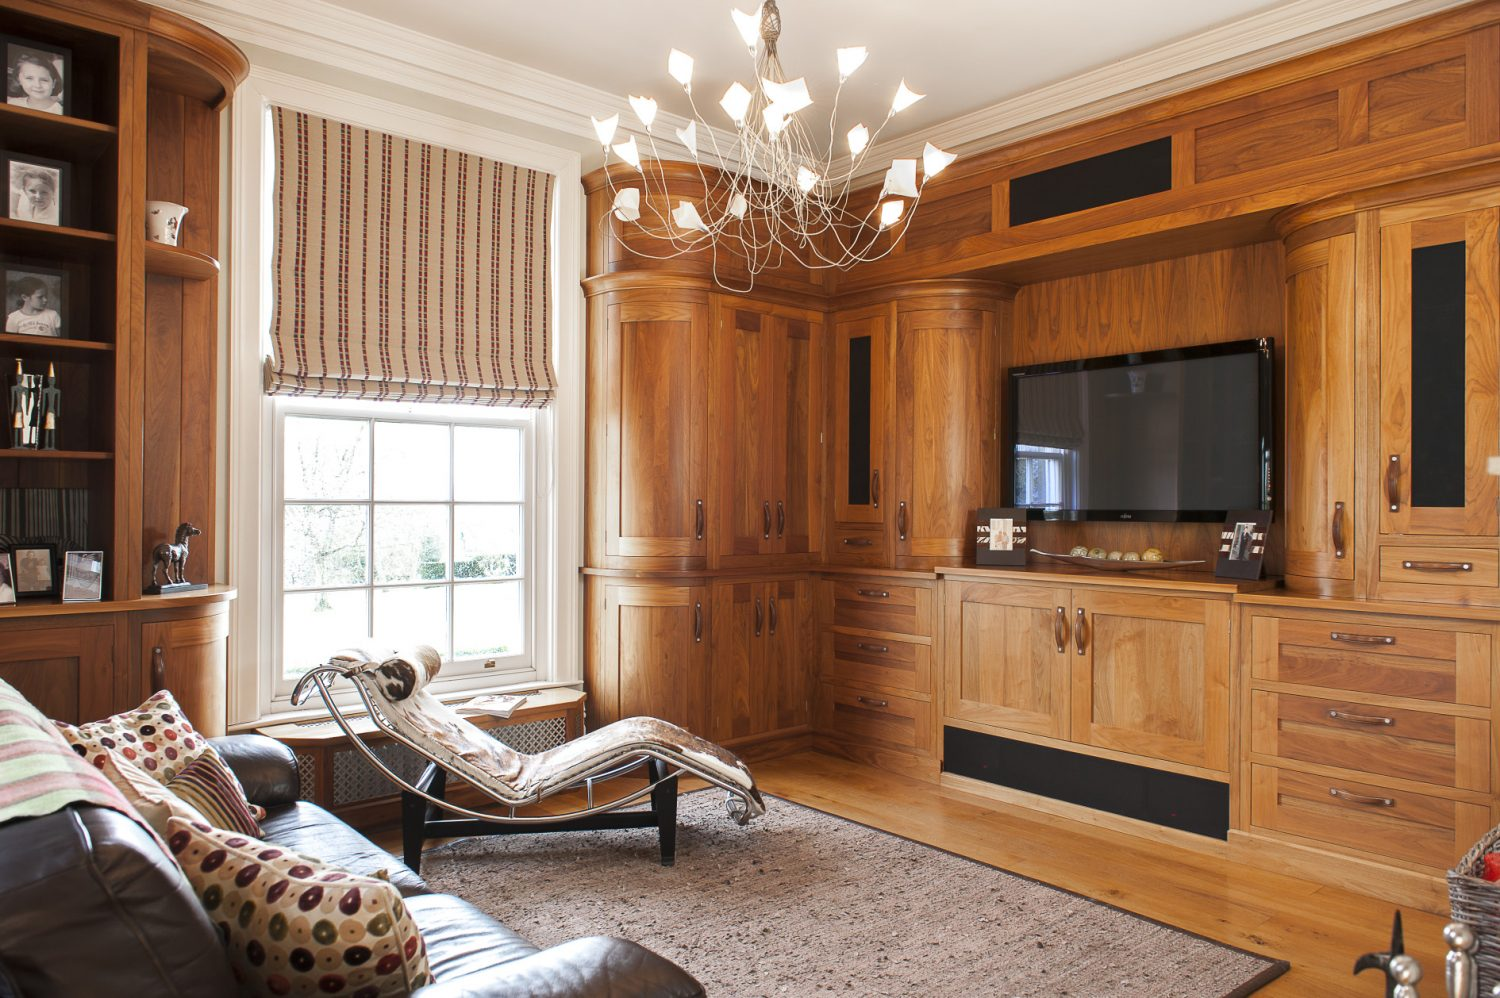 The Carson family decided to move away from a traditional Georgian style for the family room, opting for a more contemporary look, complemented by this striking Corbusier chaise longue and 'birds' nest' light fitting. The fitted cupboards also hide a fridge – for the ultimate luxury of chilled drinks on hand